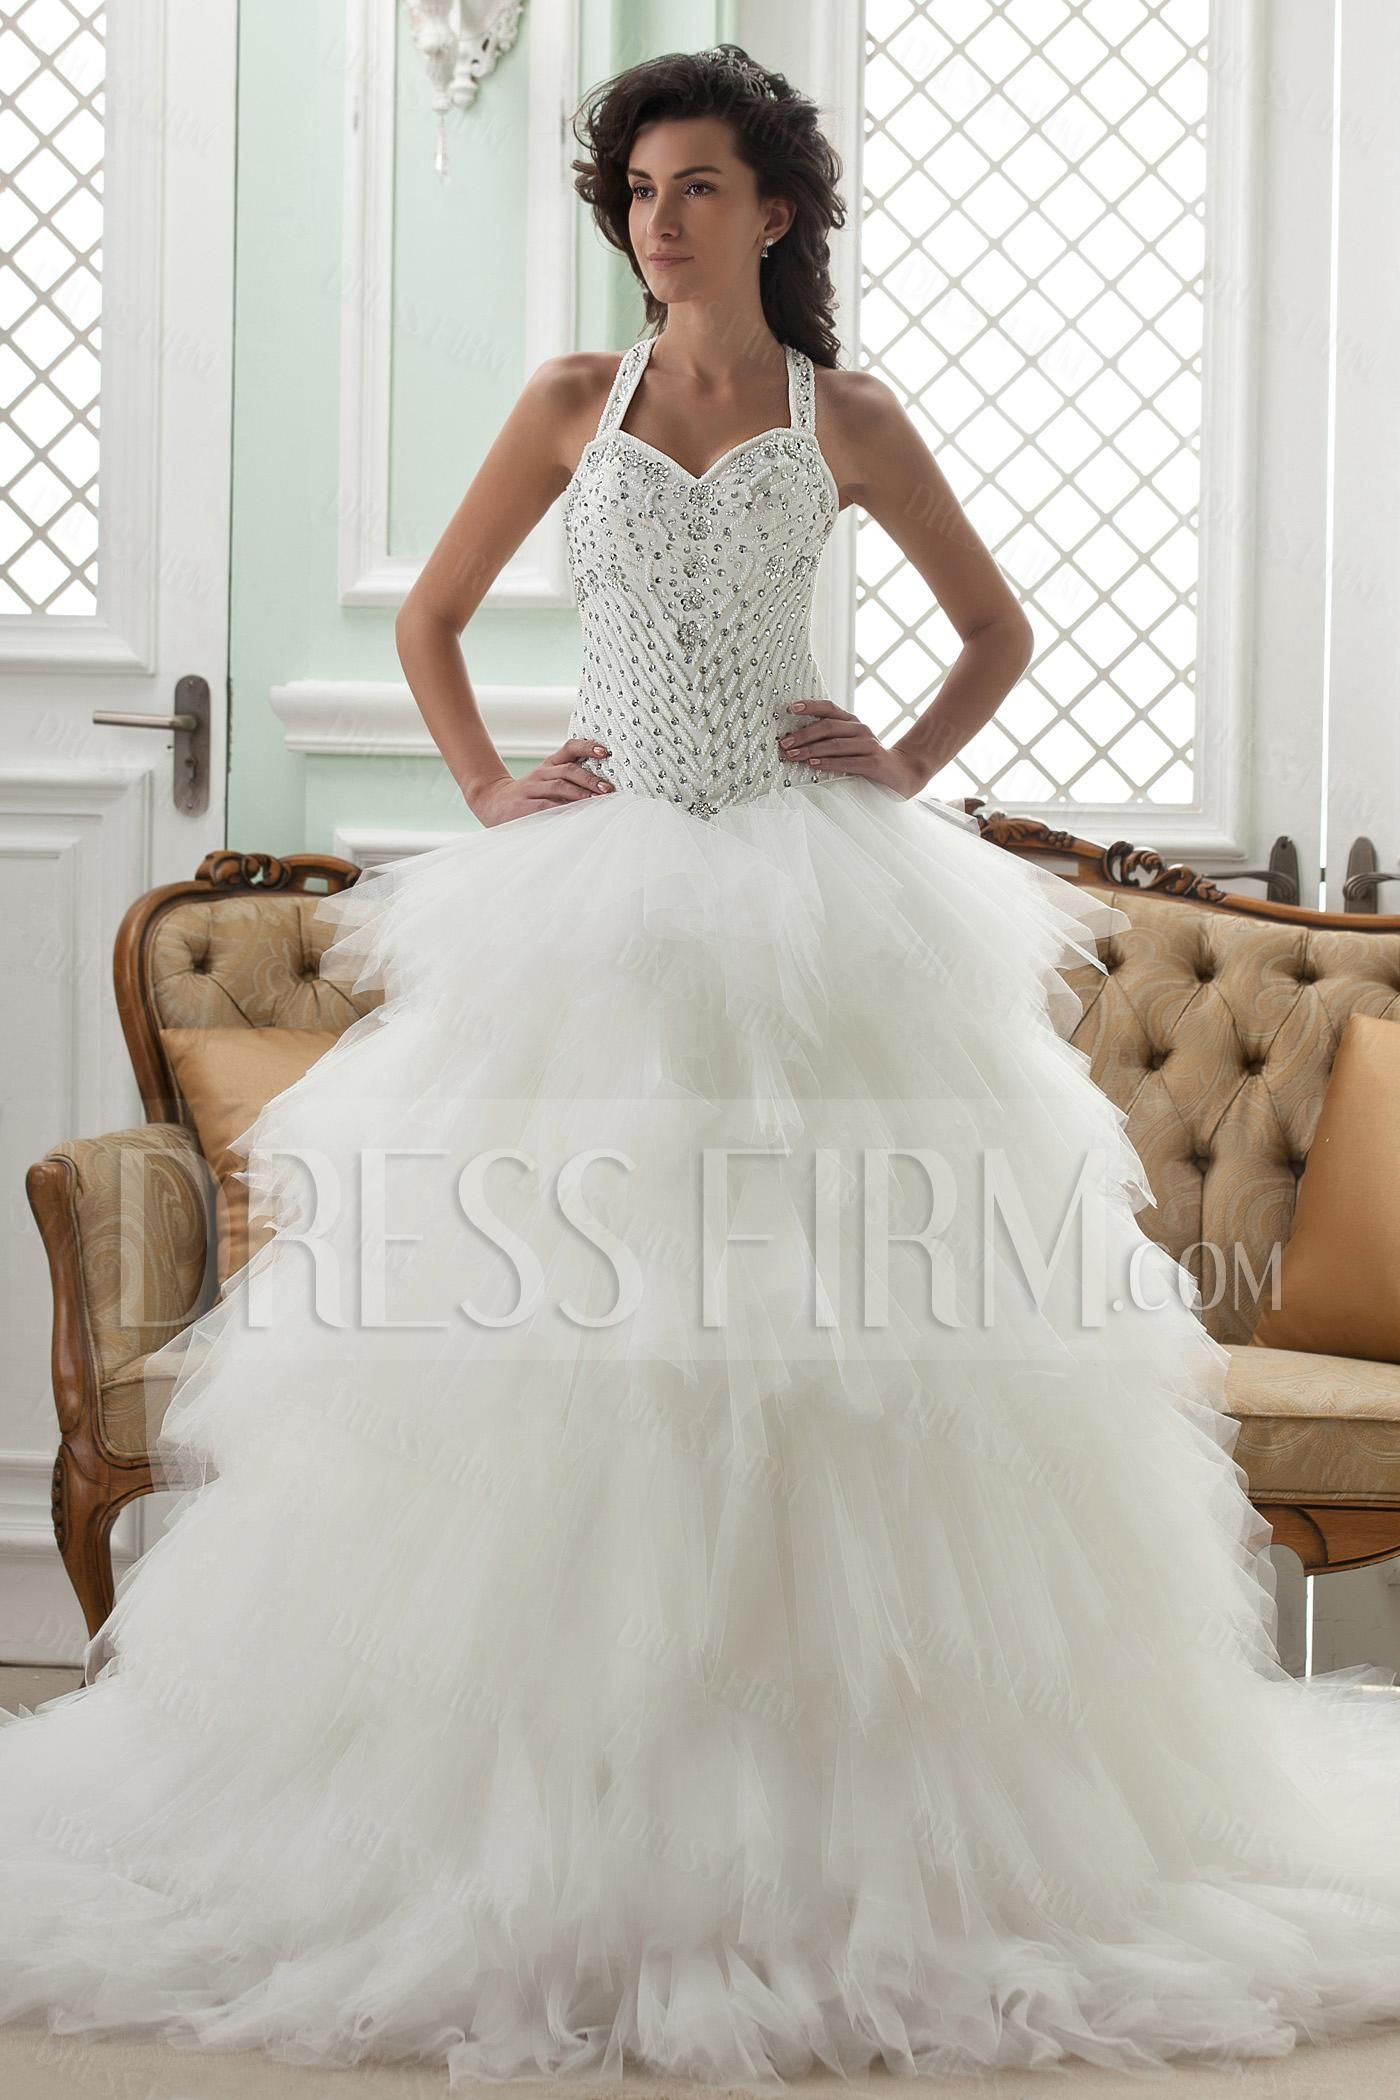 Cheap unique wedding dresses  Loving this look but my mom wants me to get a mermaid style dress